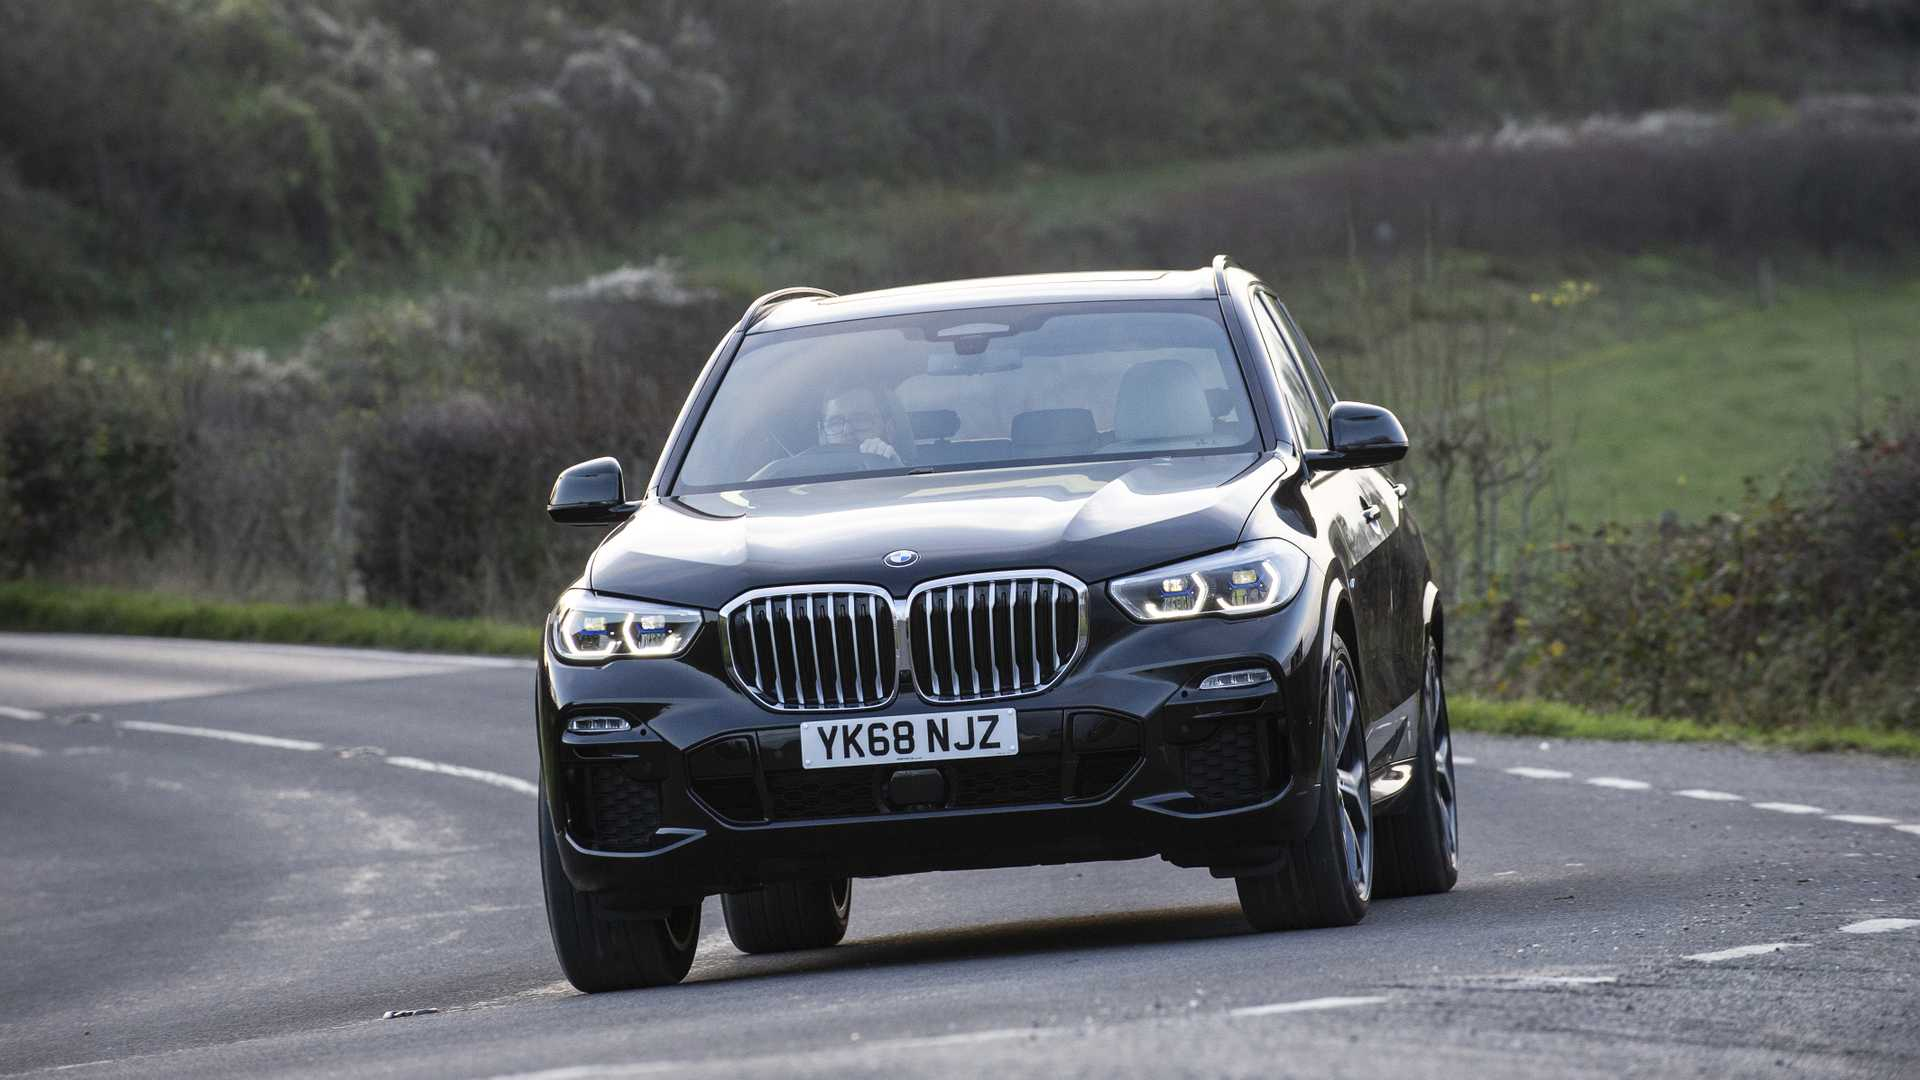 2019 Bmw X5 Arrives In The Uk Motor1 Com Photos